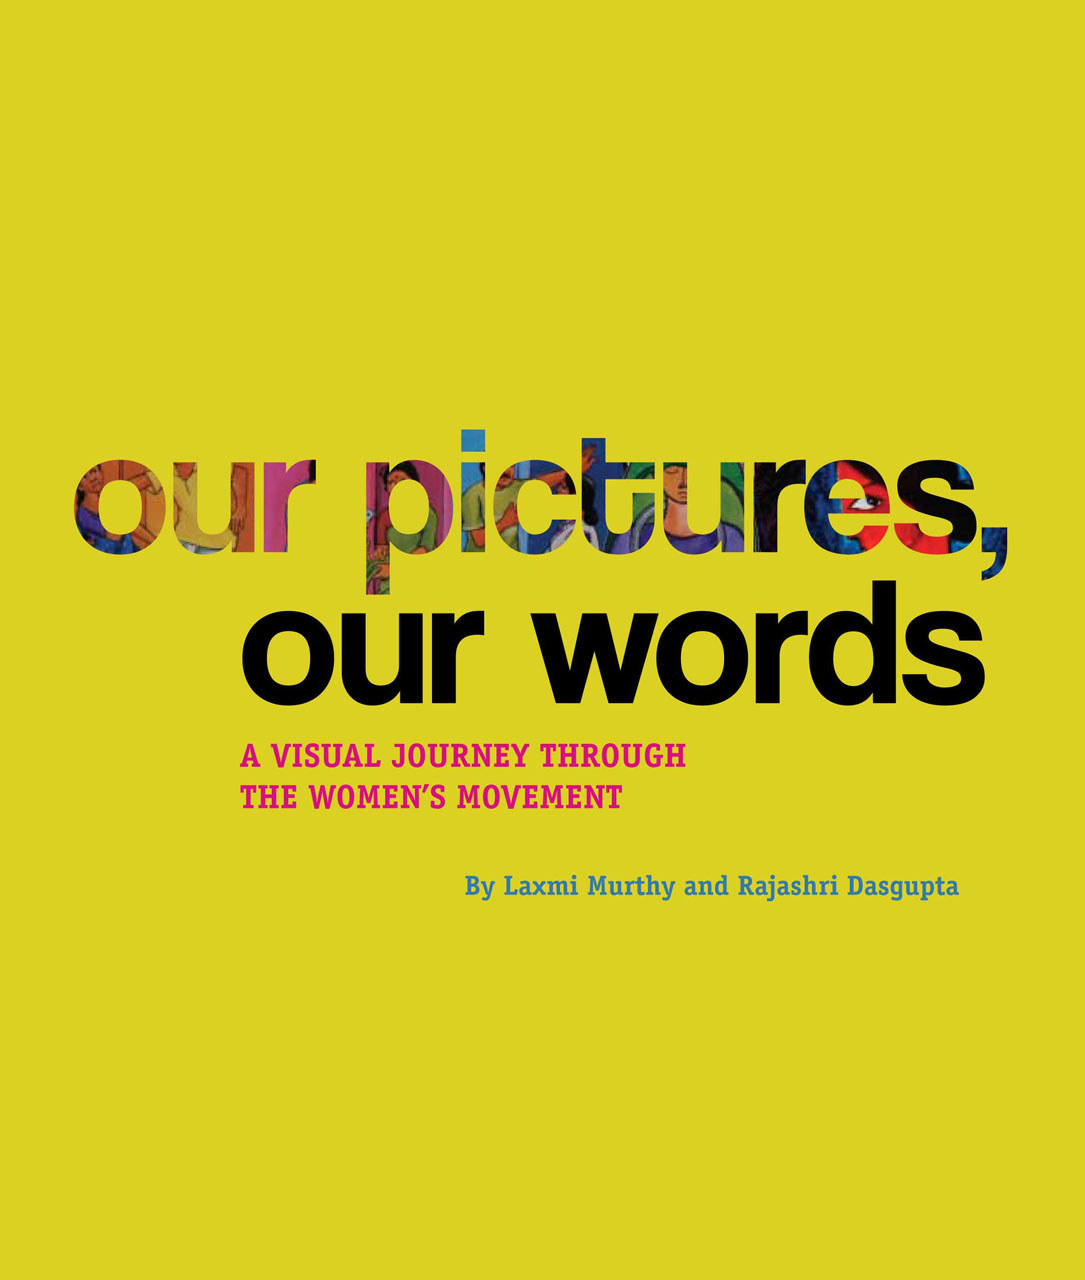 Our Pictures, Our Words: A Visual Journey Through the Women's Movement